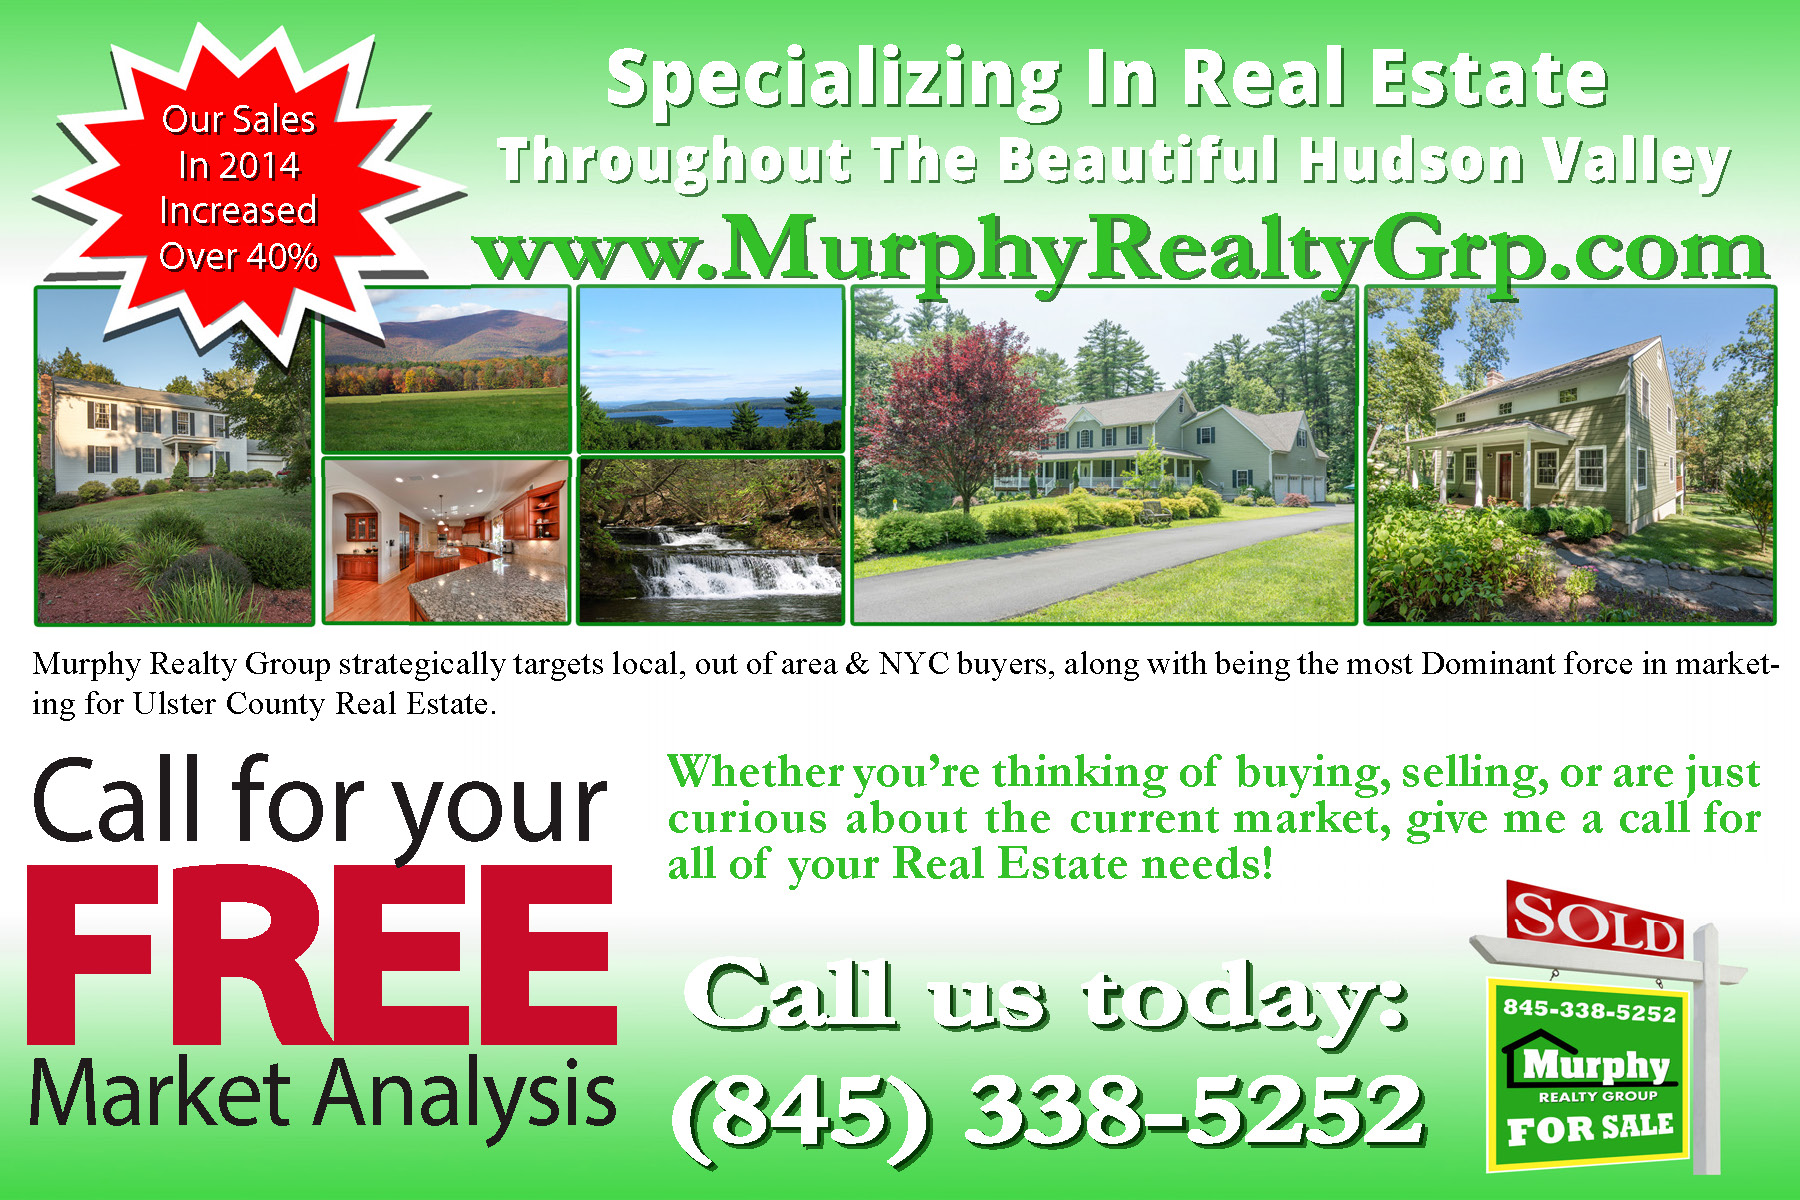 Sell Your Home With Murphy Realty Group